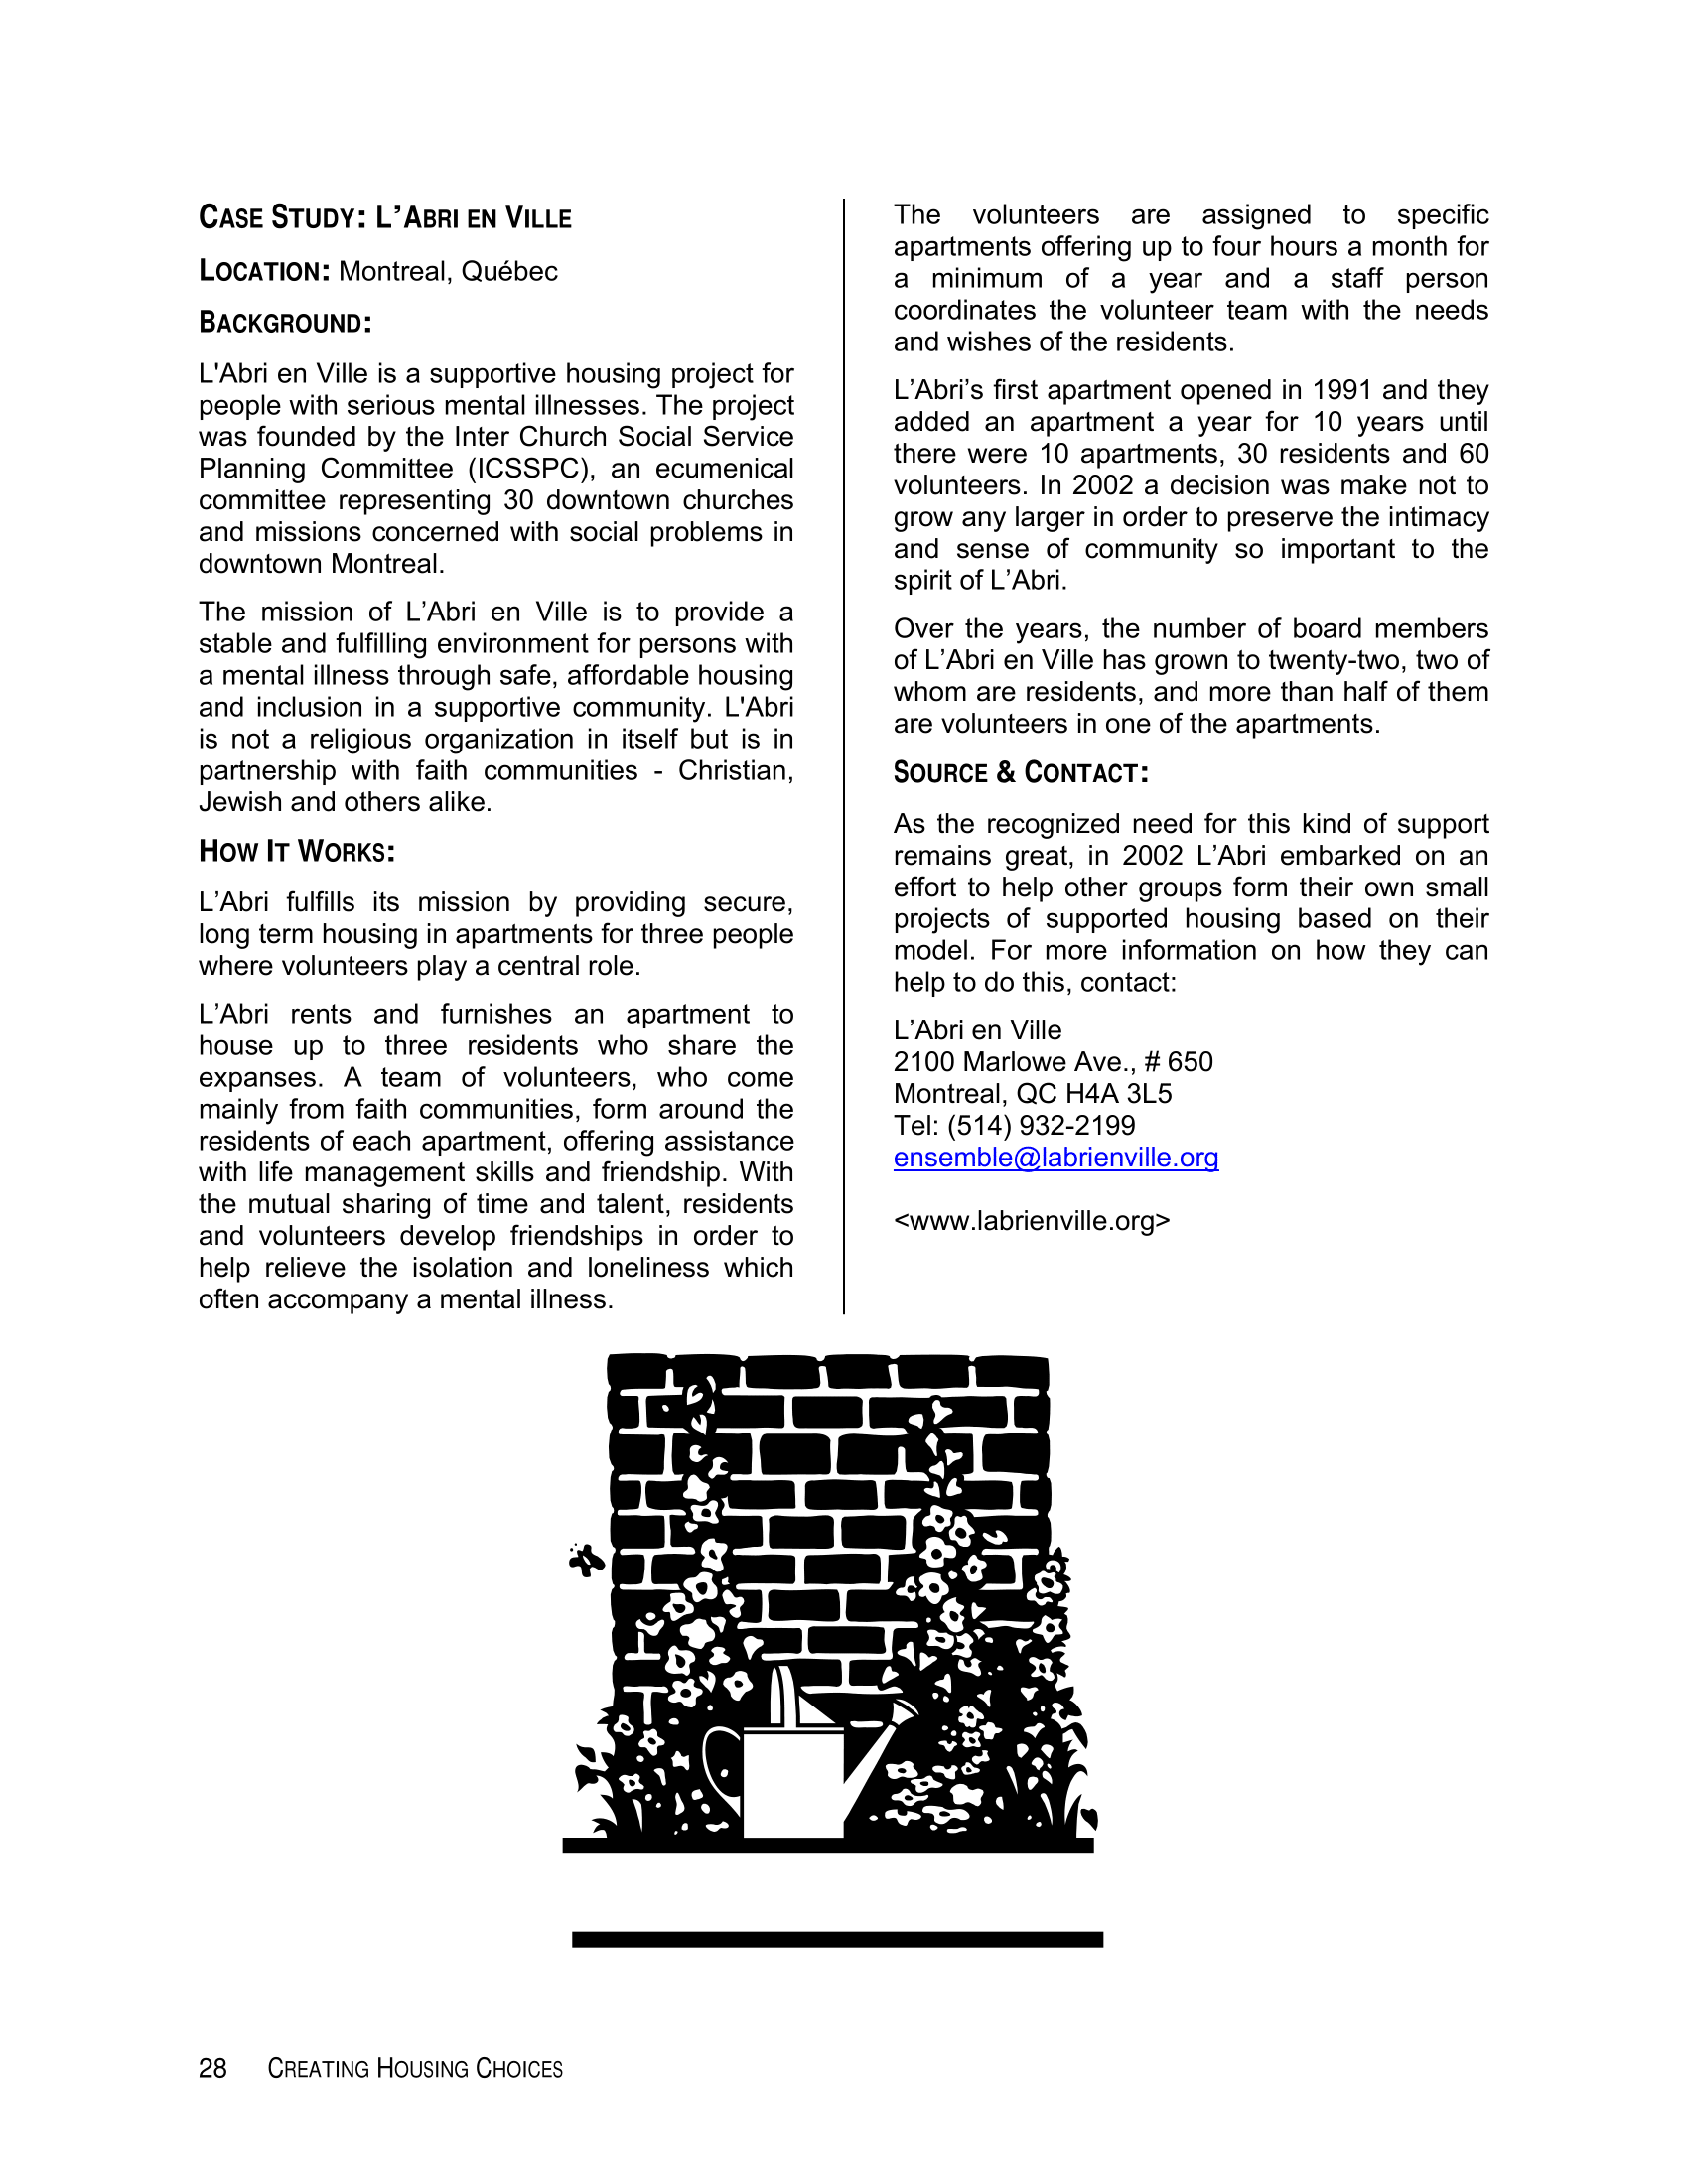 Creating Housing Choices - 2006-29.png